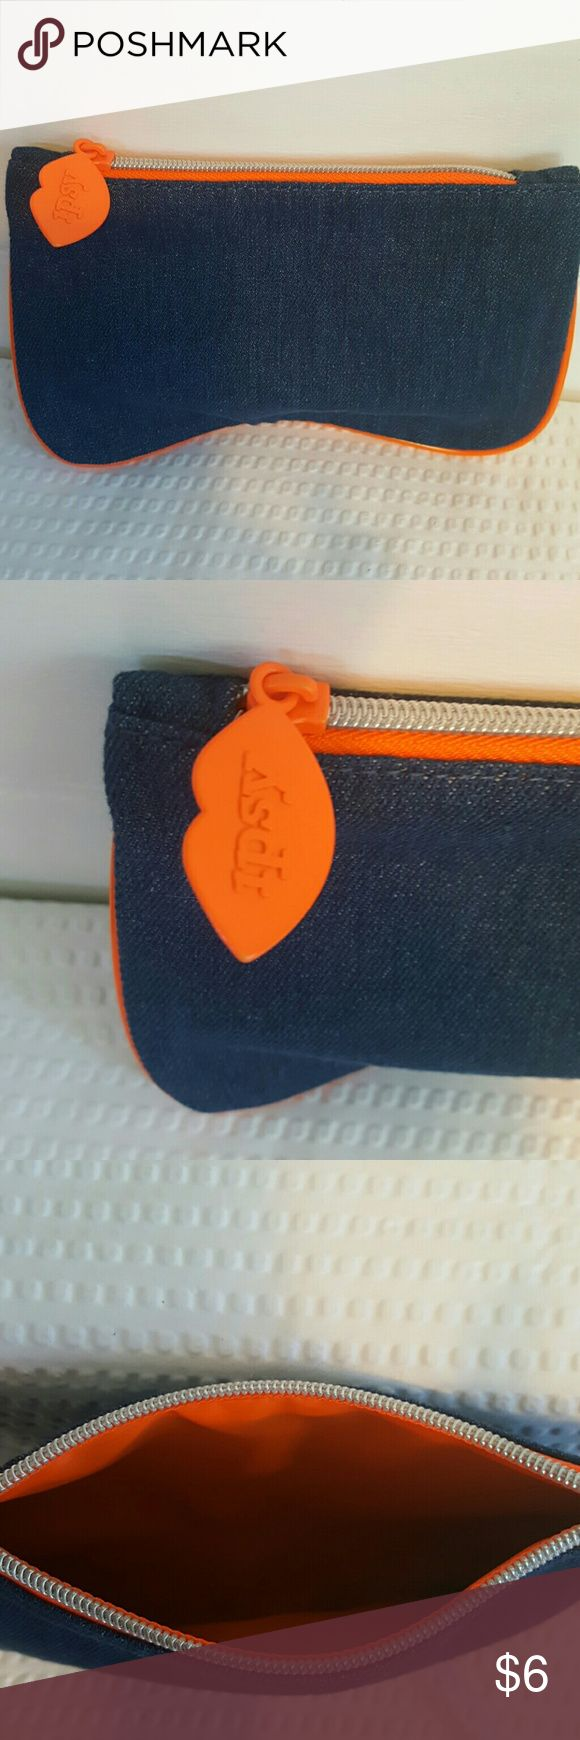 NWOT IPSY make-up/stash bag Indigo blue denim with neon orange piping and silver zipper. Sooo cute! I cannot get enough of these stylish little bags. Slight bean shape at bottom. 5x8 Ipsy Bags Travel Bags